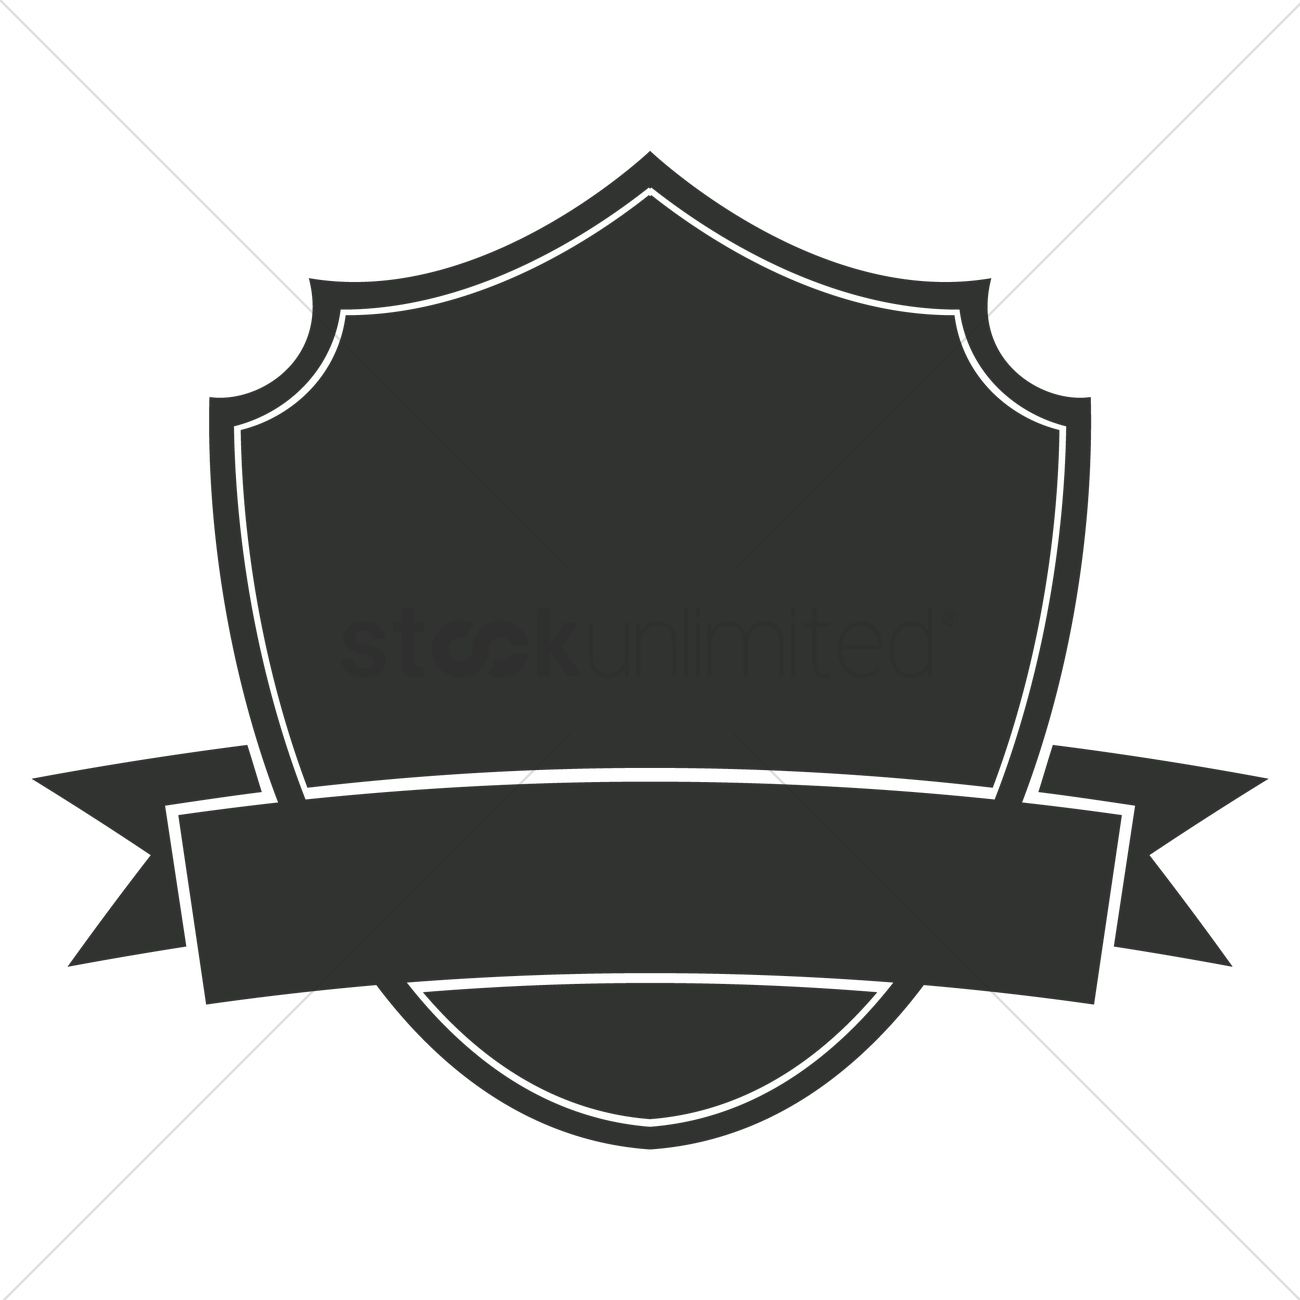 Badge Design Template Vector Image 1973770 Stockunlimited